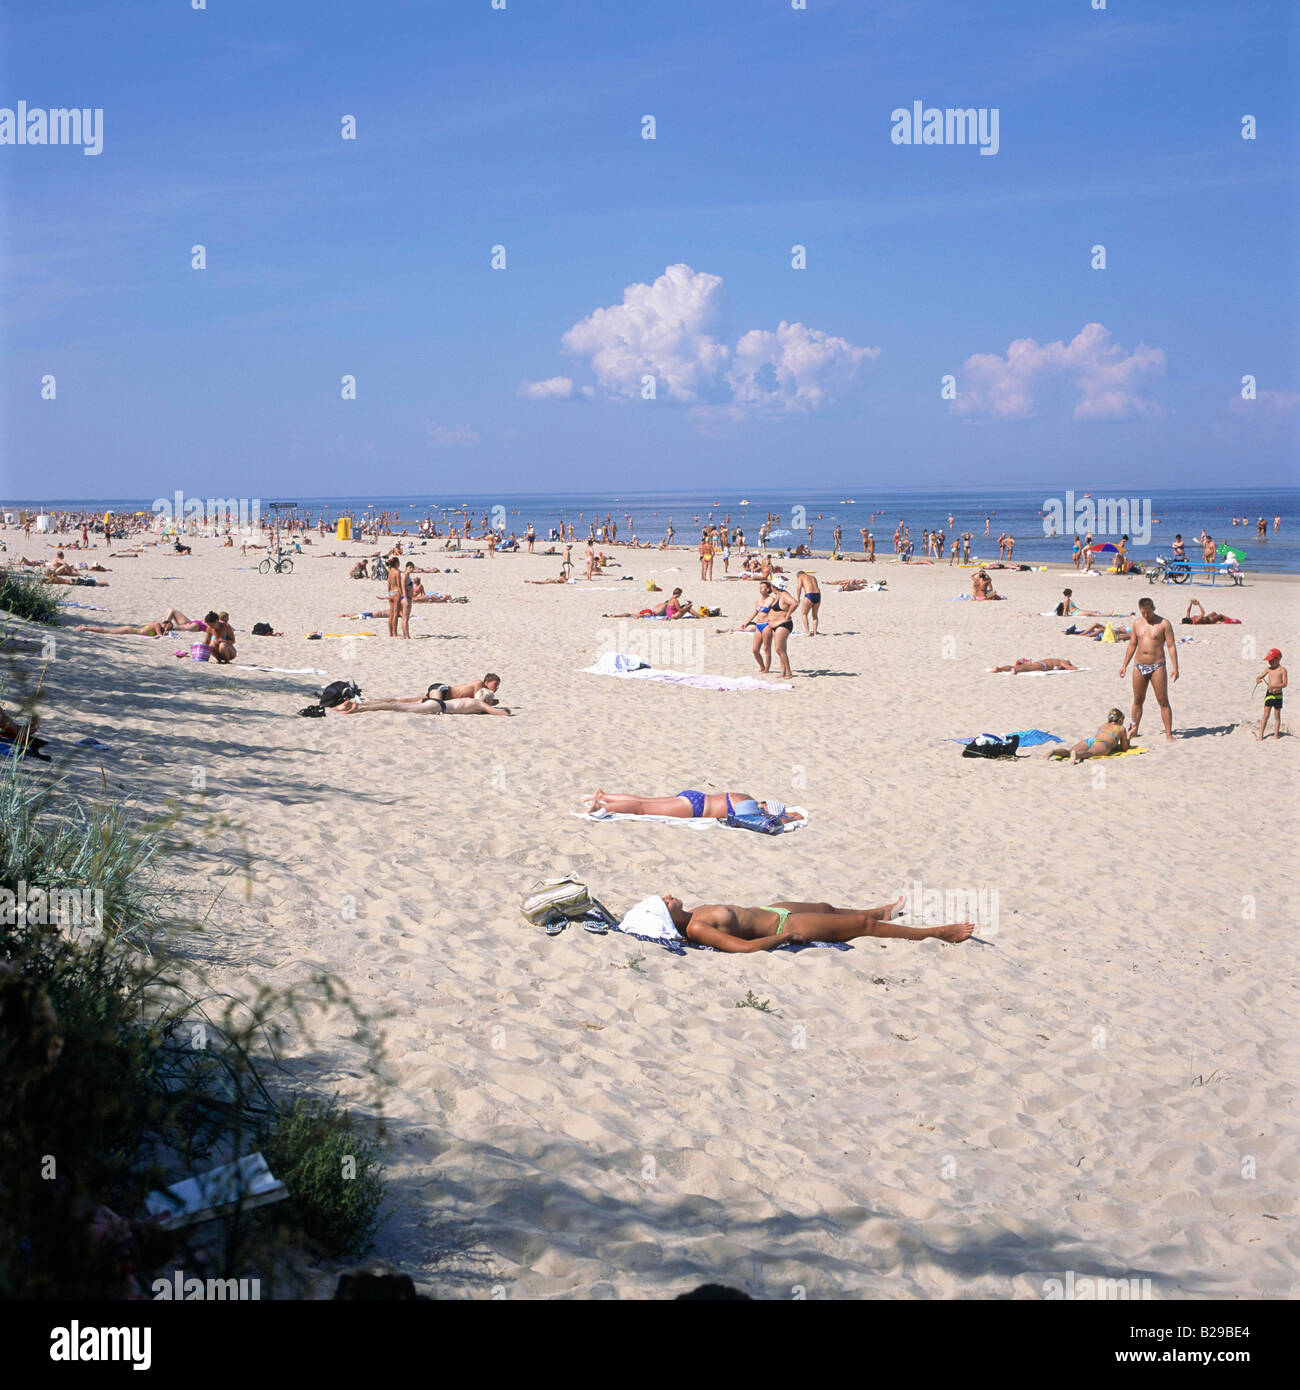 LATVIA Jurmarla beach Date 10 06 2008 Ref ZB648 114982 0005 COMPULSORY CREDIT World Pictures Photoshot - Stock Image